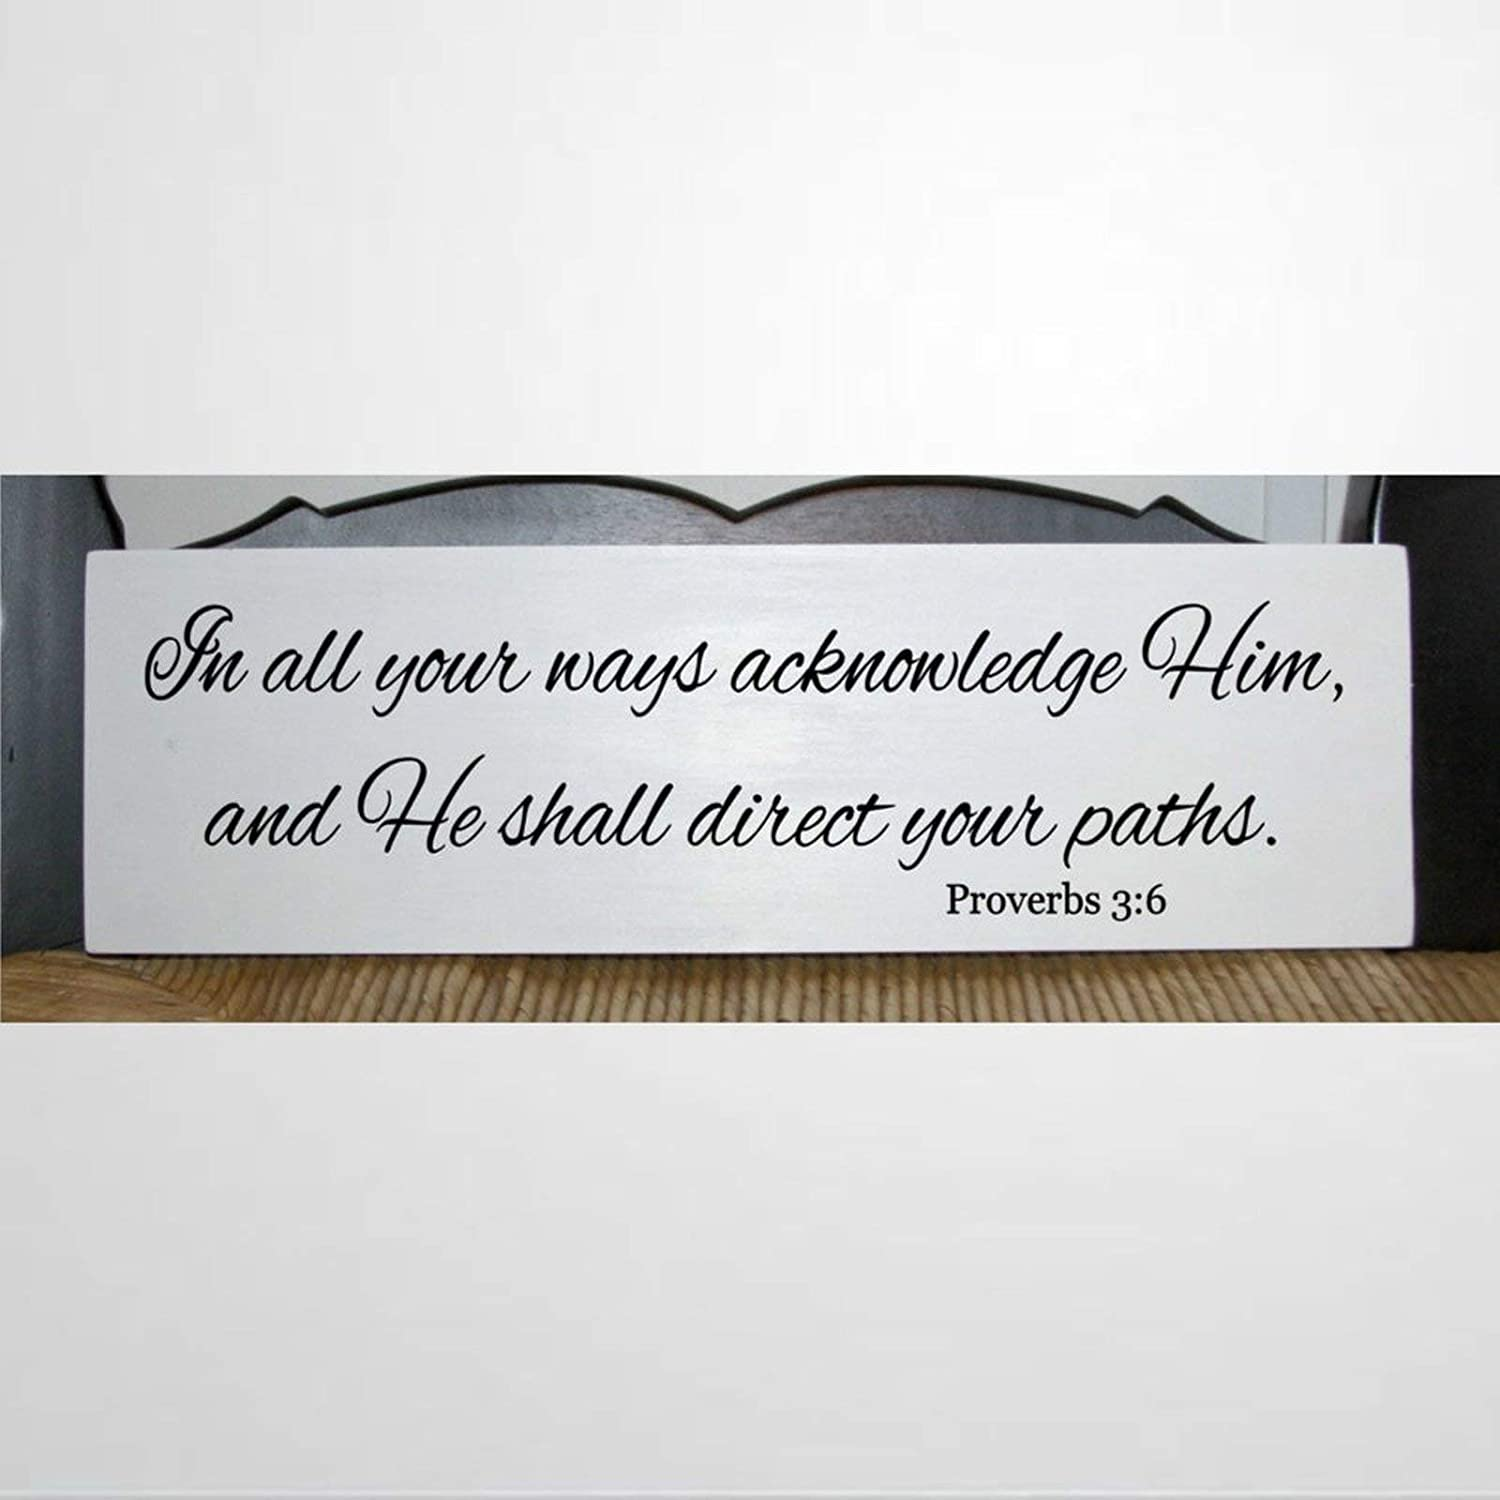 43LenaJon in All Your Ways Acknowledge Him Wood Wall Decor Sign,and he Shall Direct Paths proverbsCustom Wood Sign,Wooden Plaque Art for Easter, Father's Day,Mother's Day,Home,Gardens.